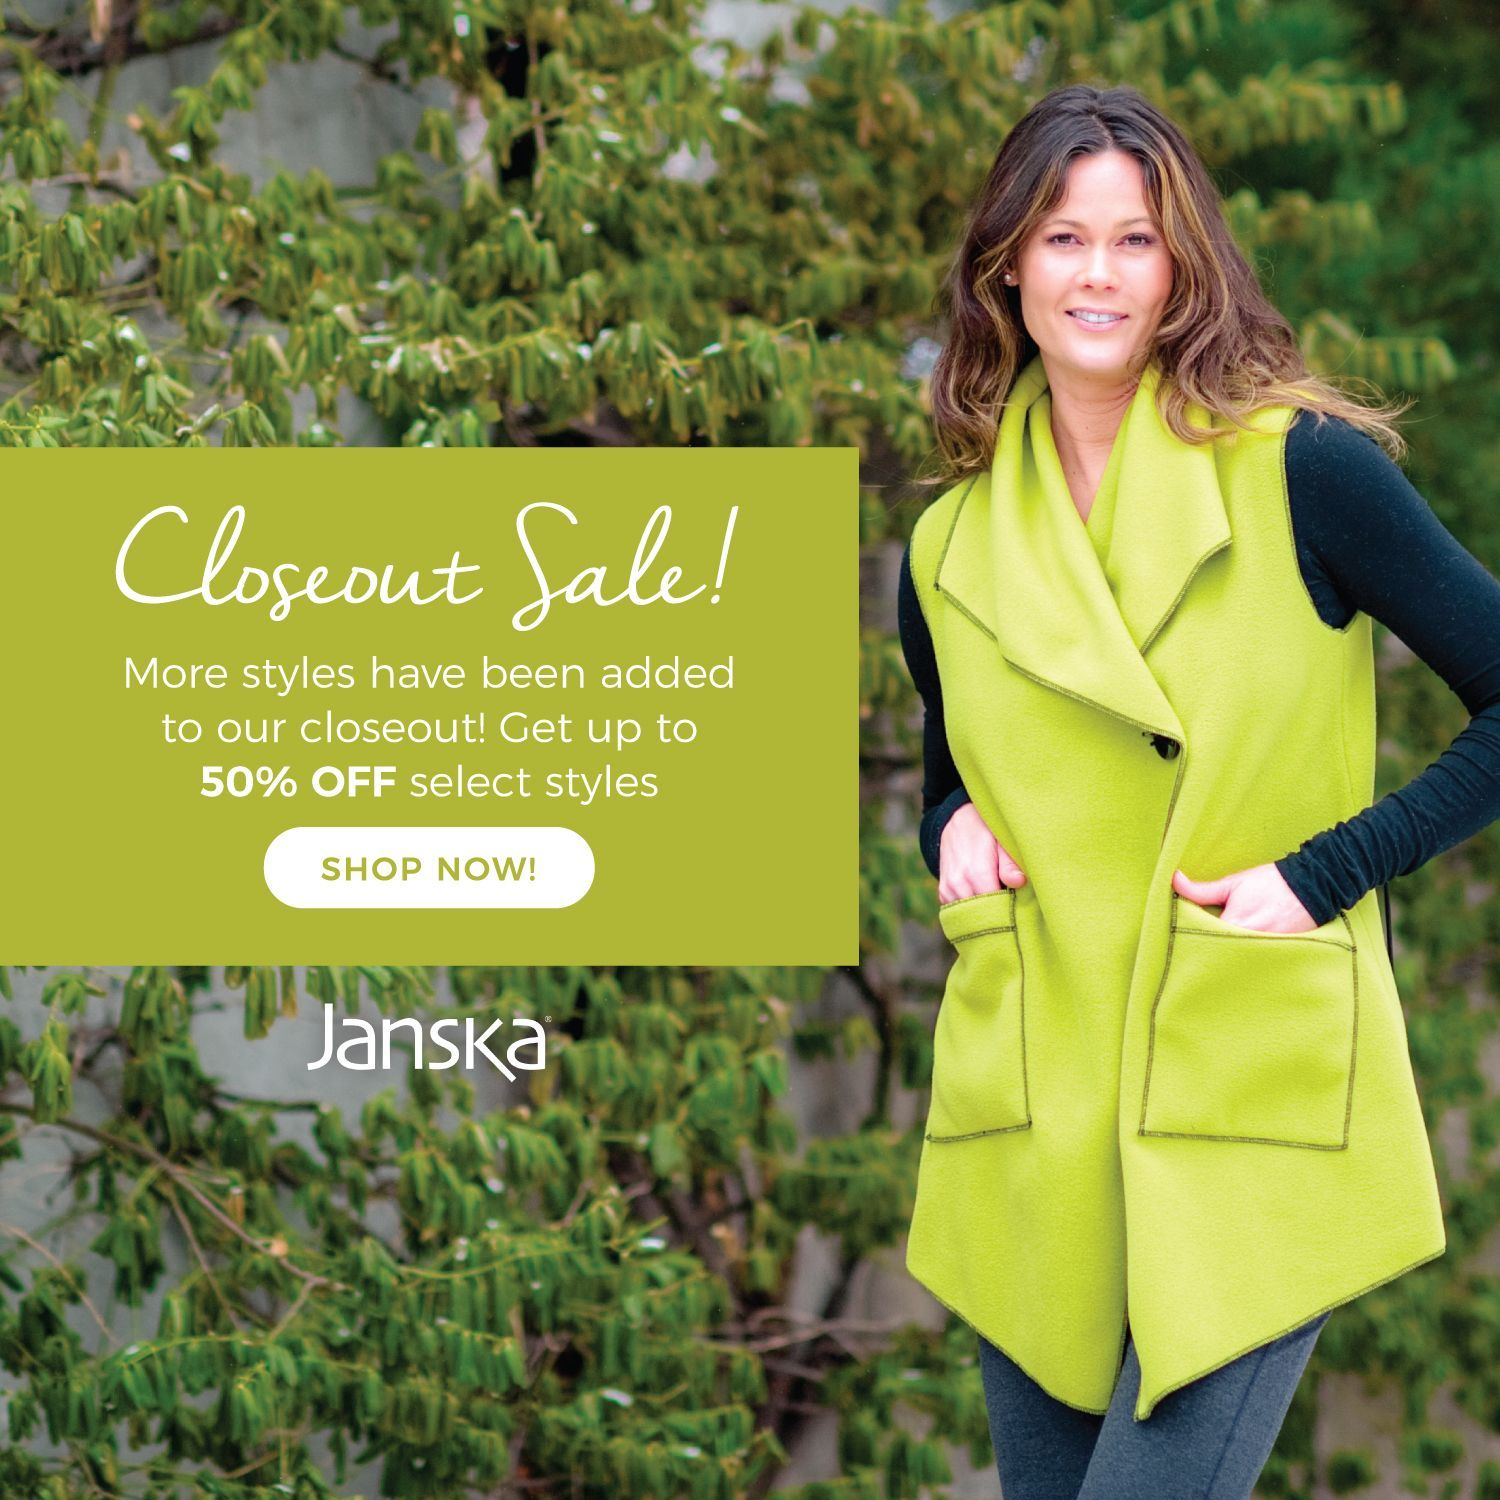 Closeout sale more styles have been added to our closeout